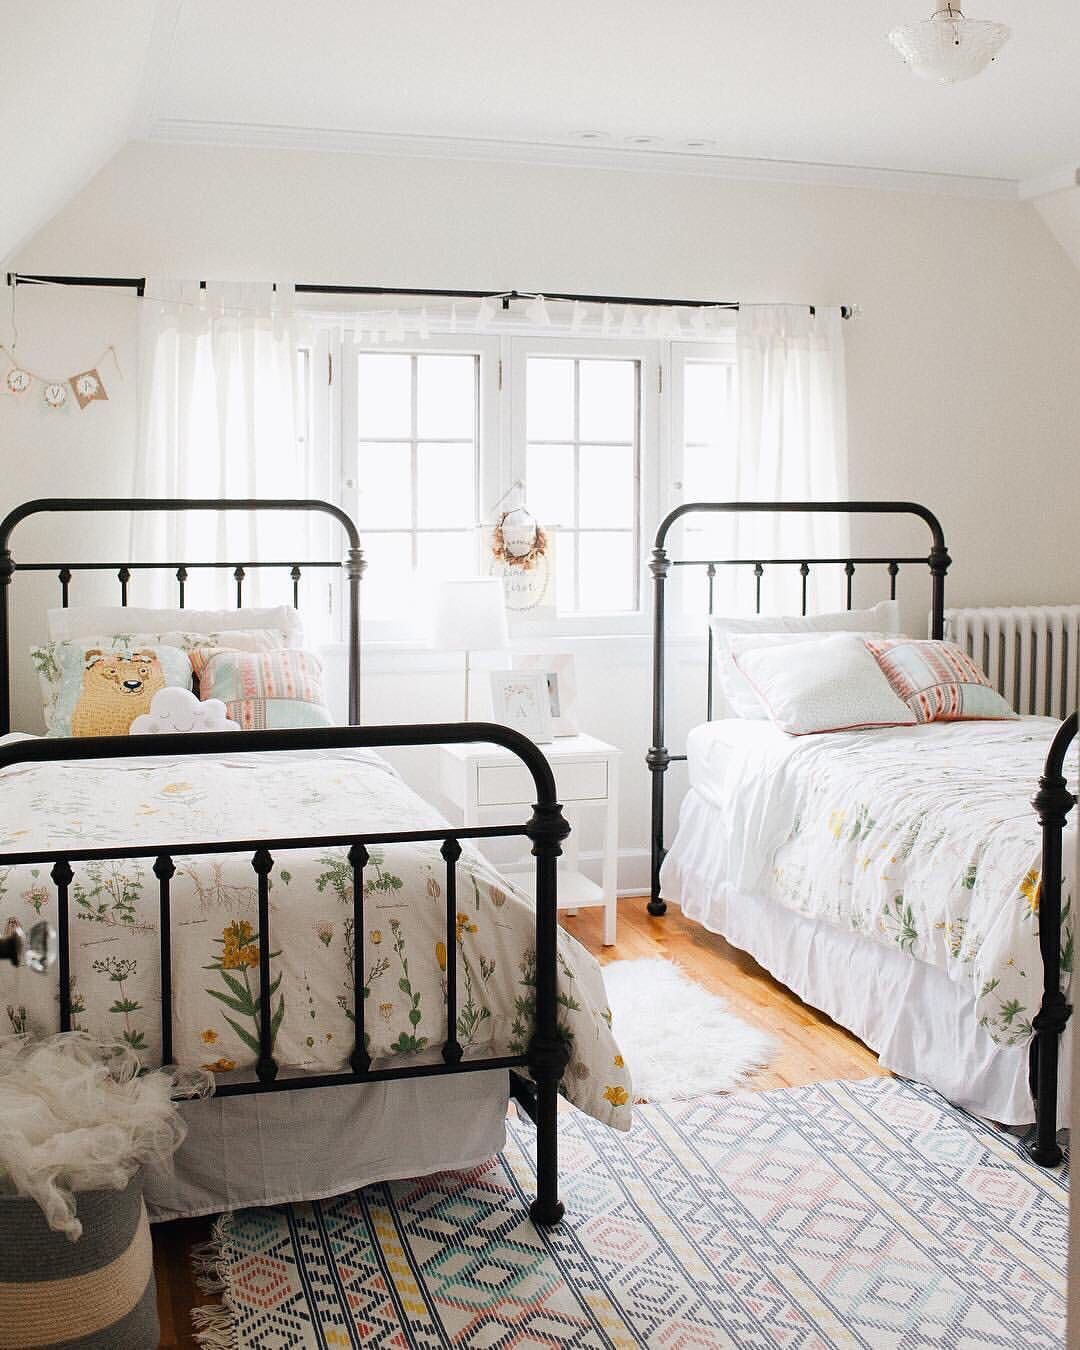 Cute for a shared girl's bedroom. Farmhouse matching metal